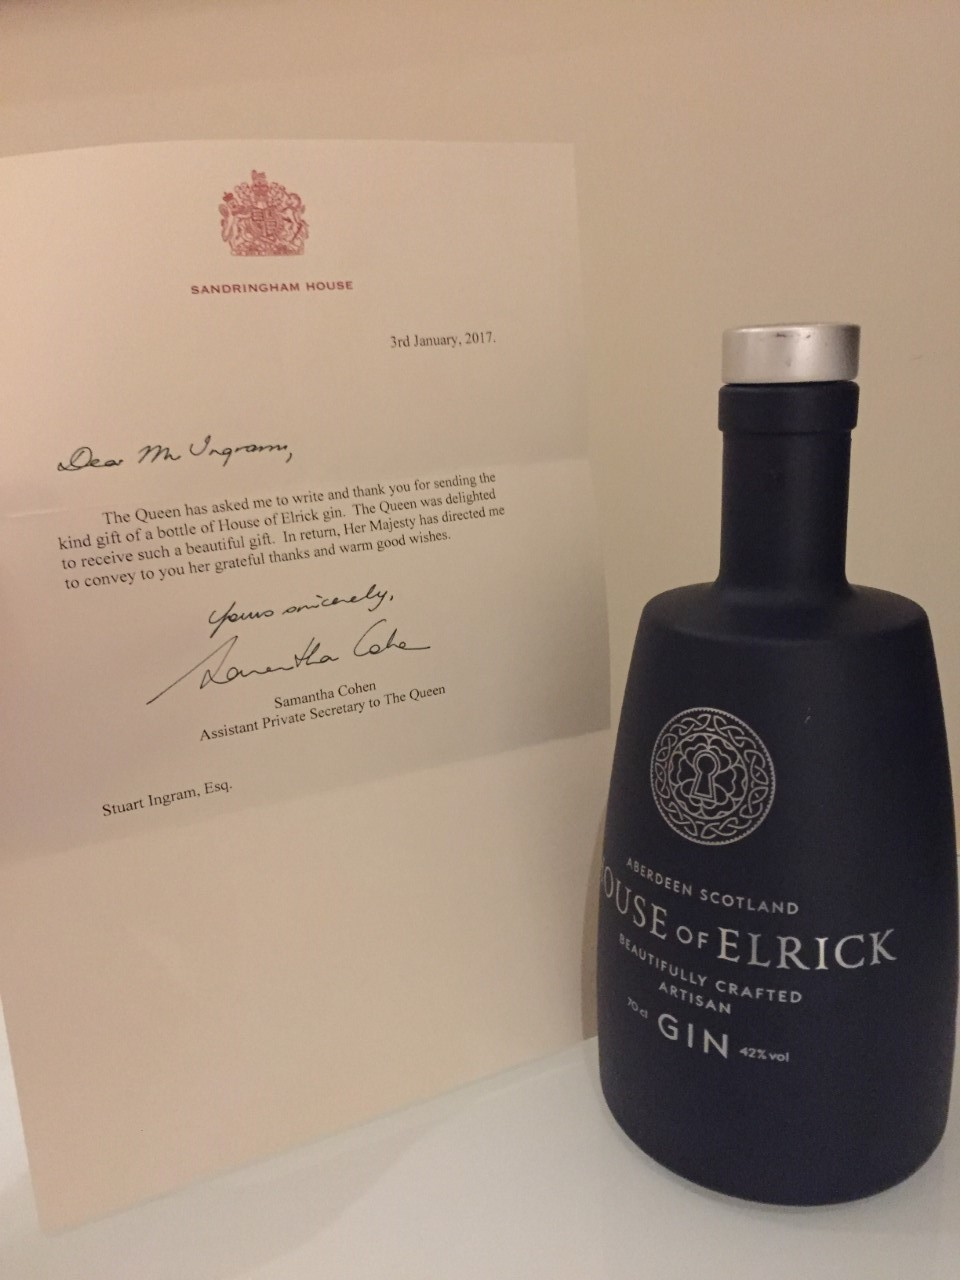 Impressed:  The Queen wrote a letter of thanks to the gin firm.